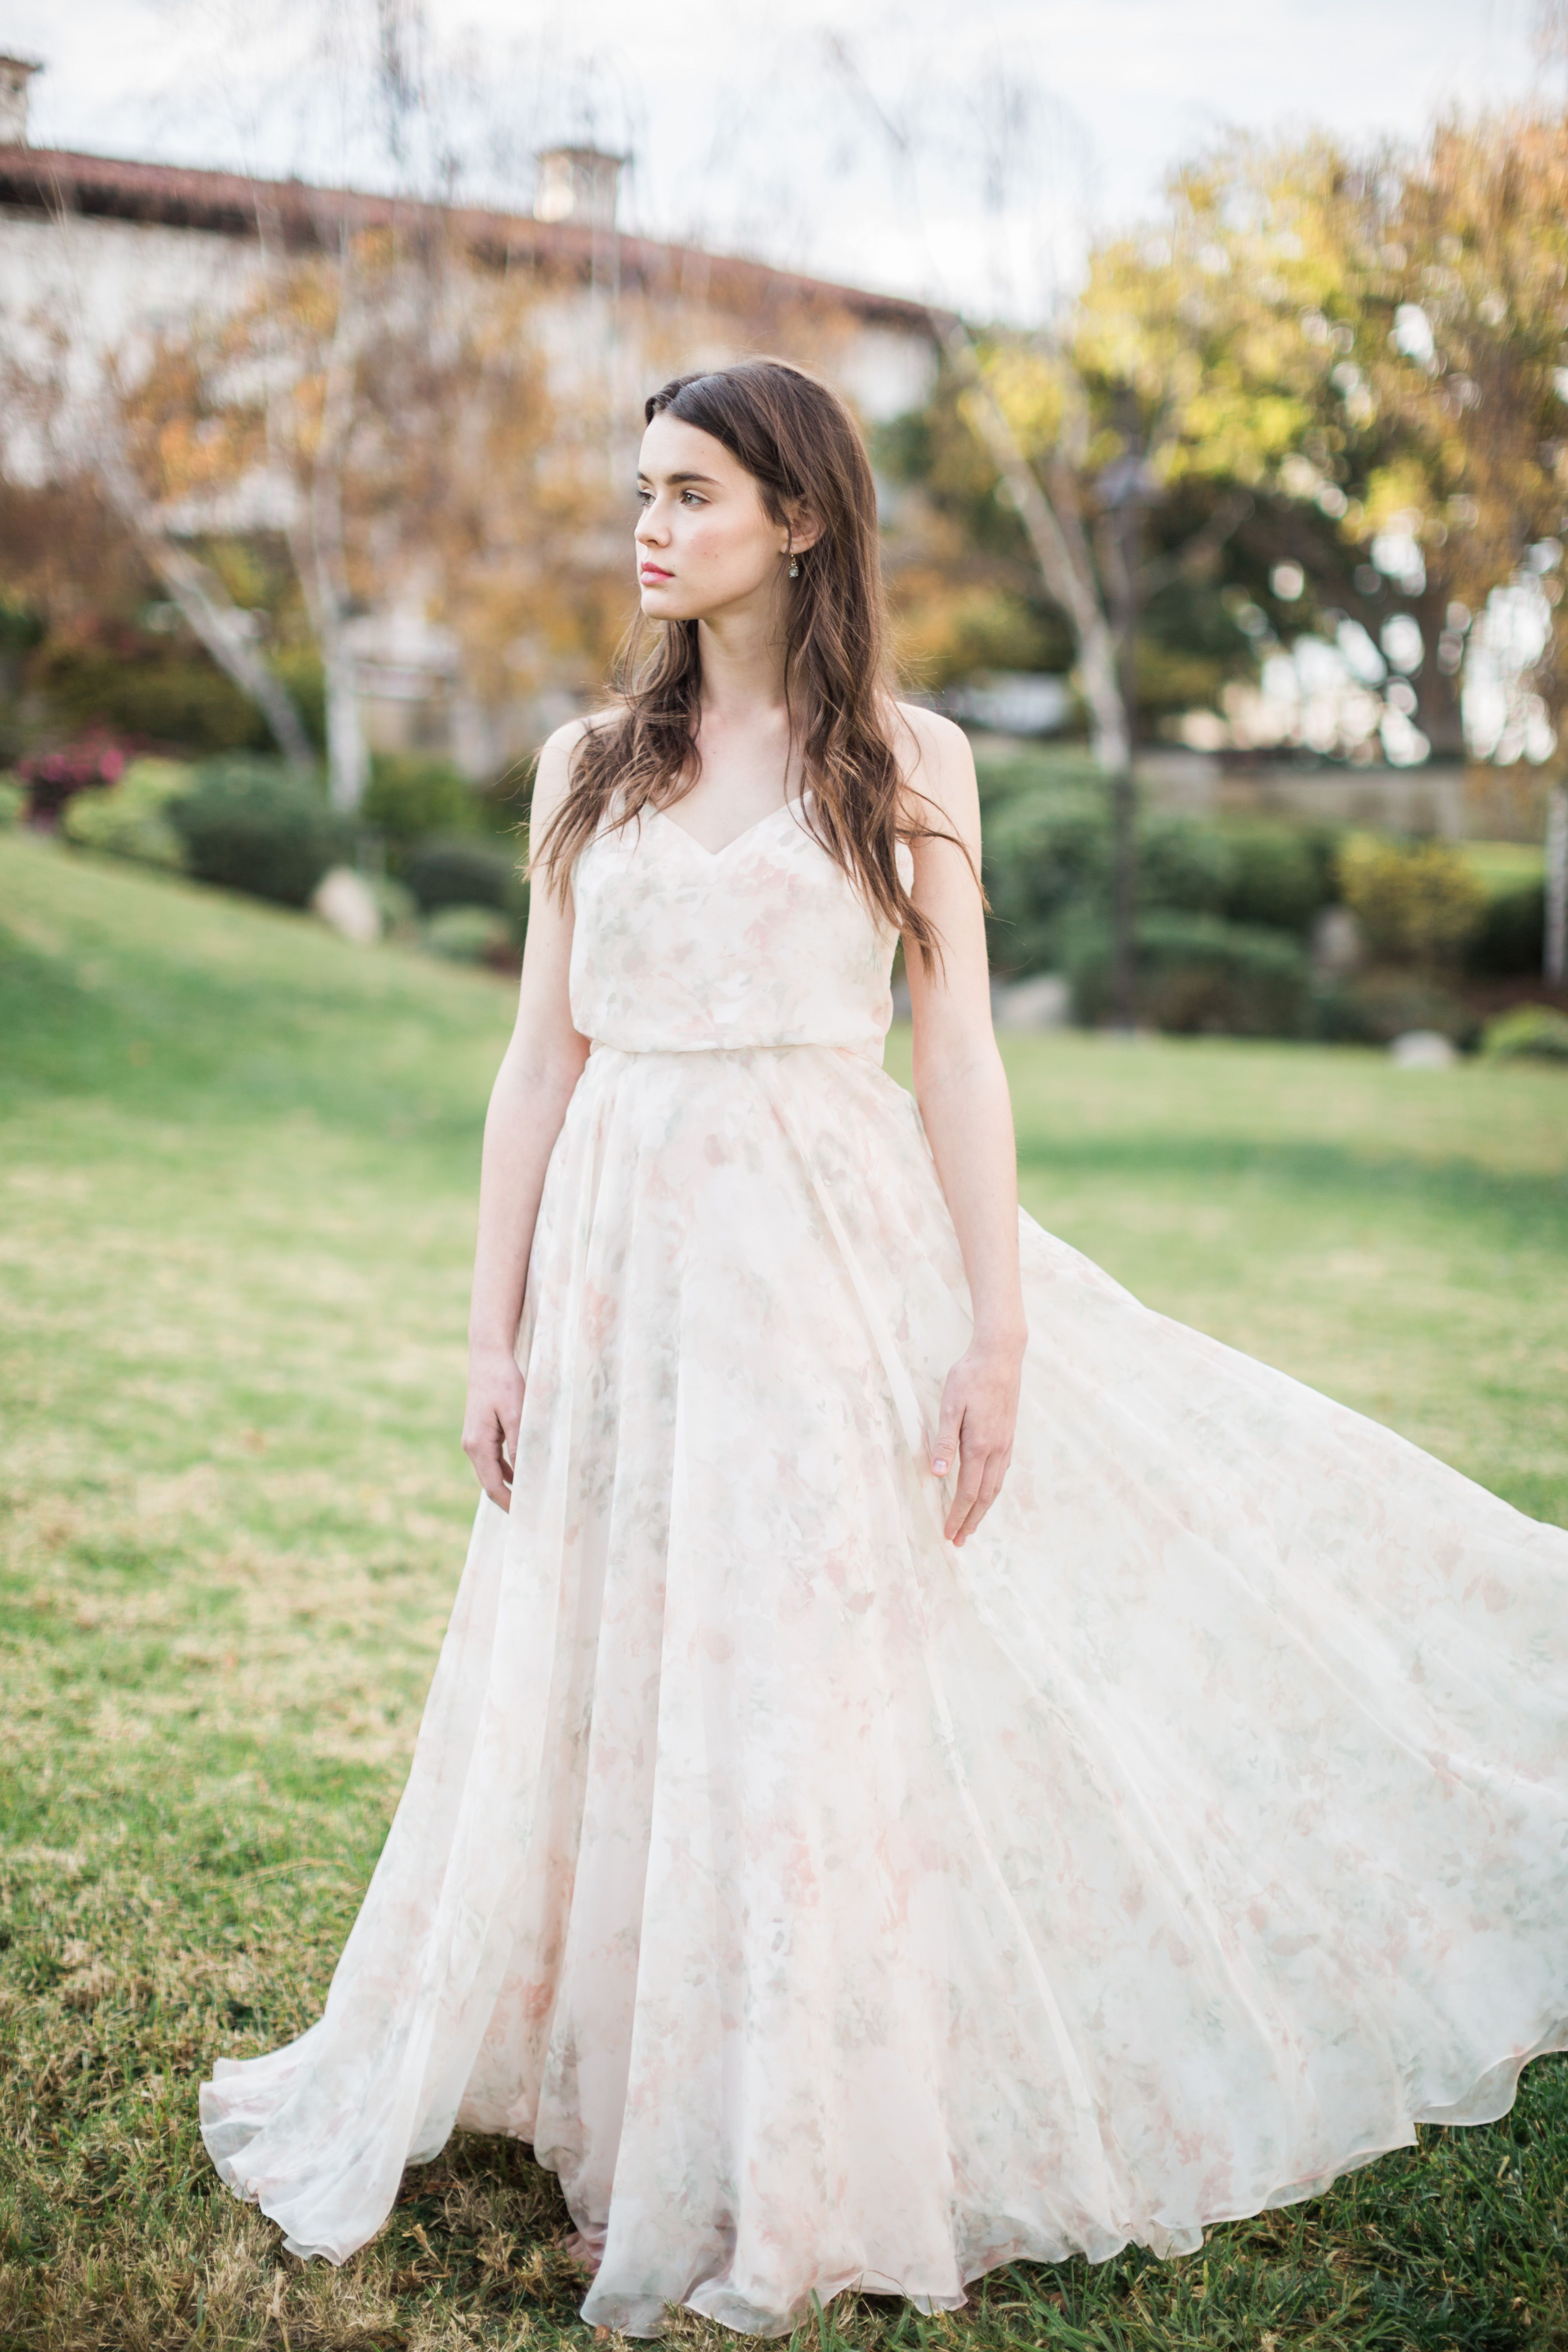 Inesse Dress in Blush Watercolor Print by Jenny Yoo  dbc5bdcc94afe